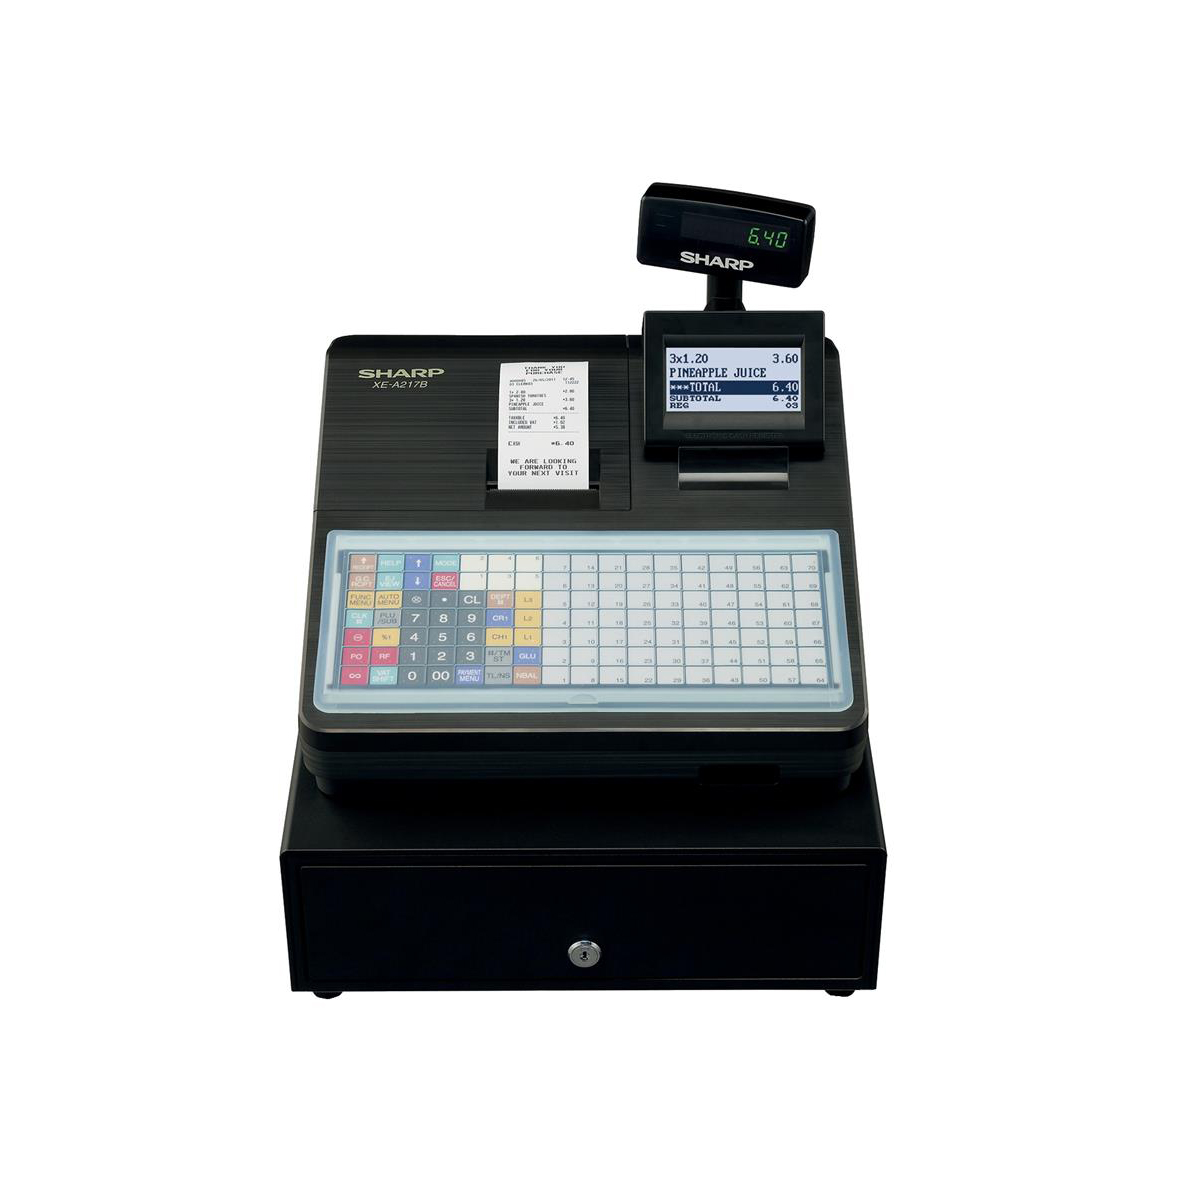 Sharp Cash Register 2000 PLUs 99 Departments with Built-In SD Card Slot Black Ref XEA217B